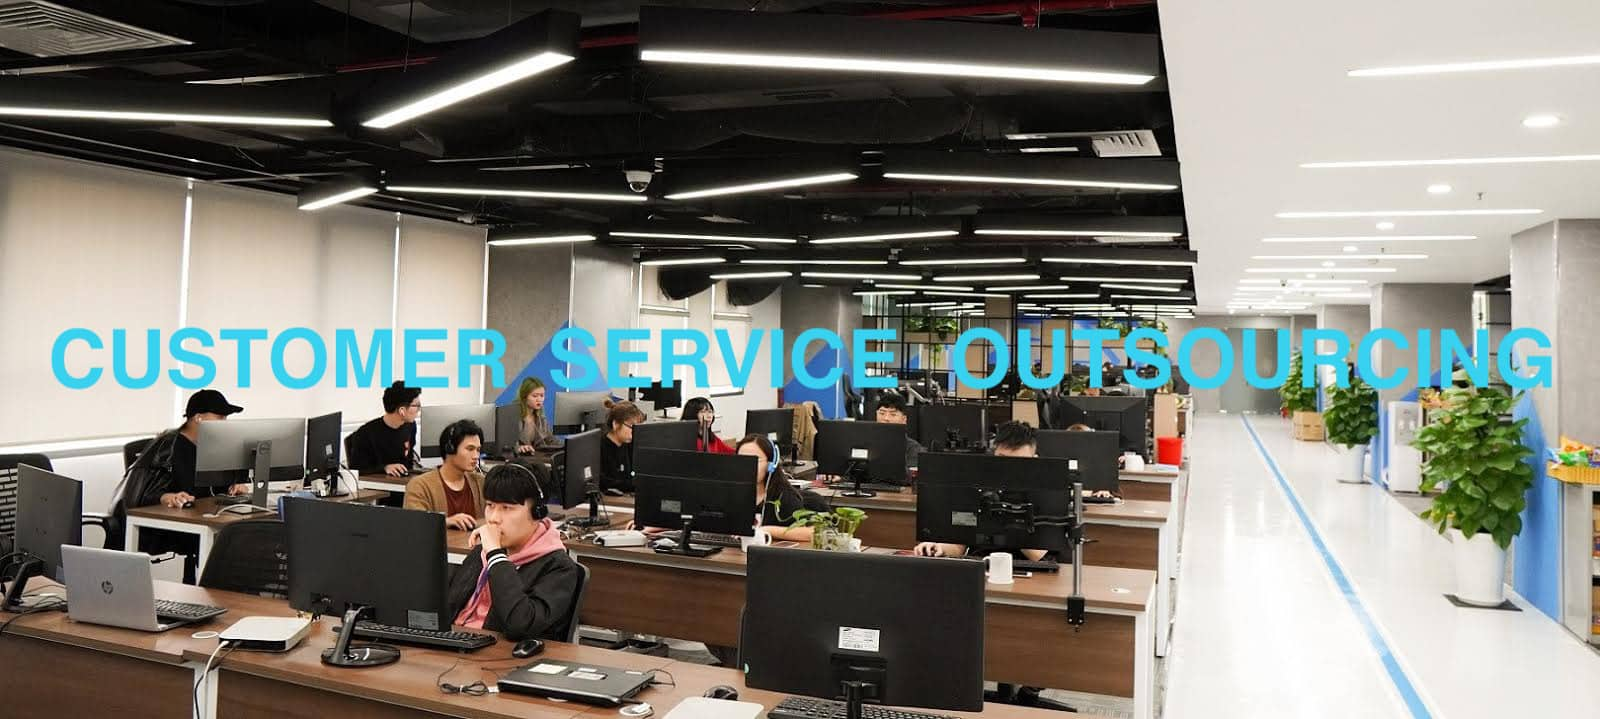 One of the top Customer service outsourcing companies Pure Moderation office